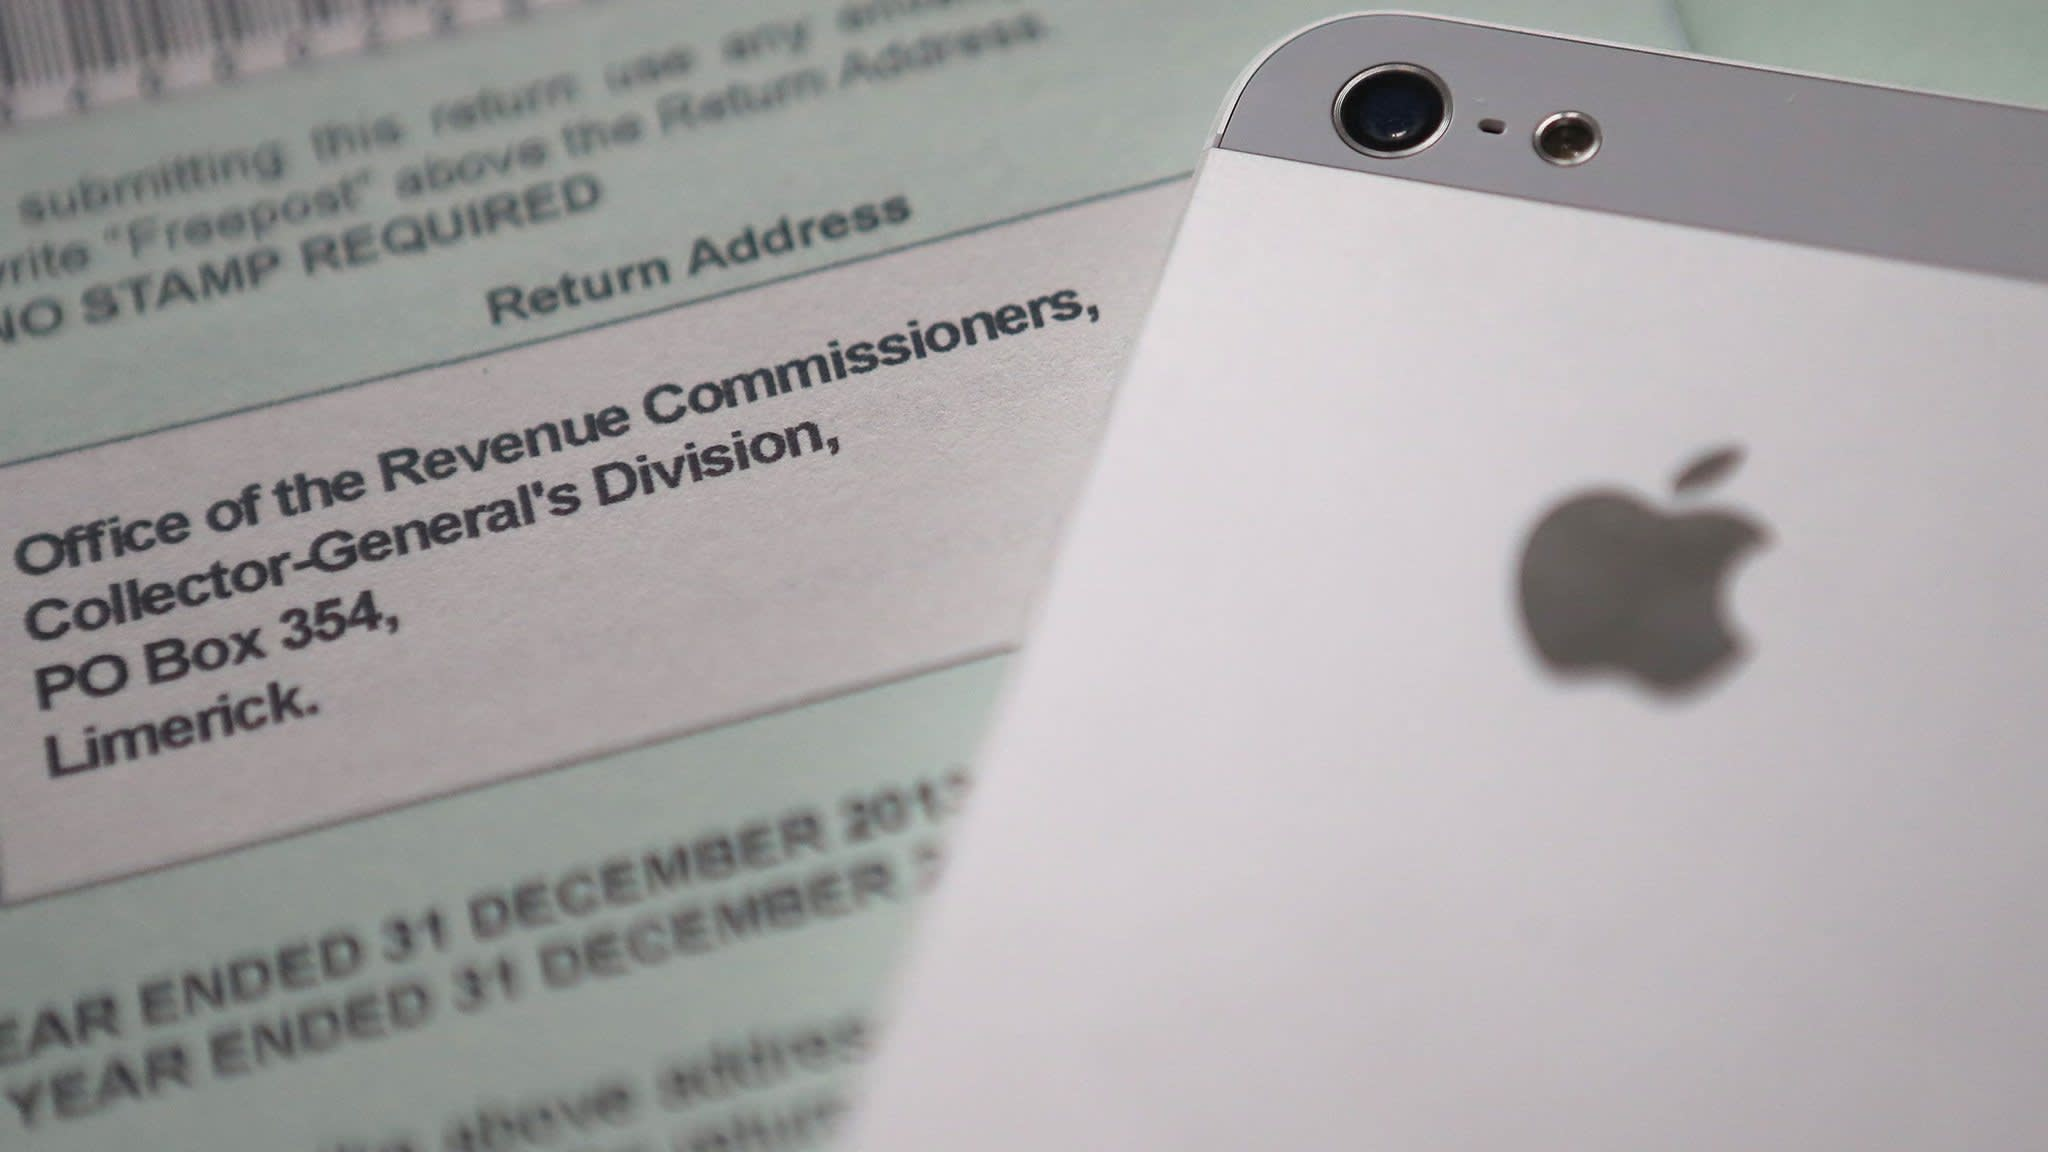 image when Apple to pay €13bn to Ireland over back tax claim